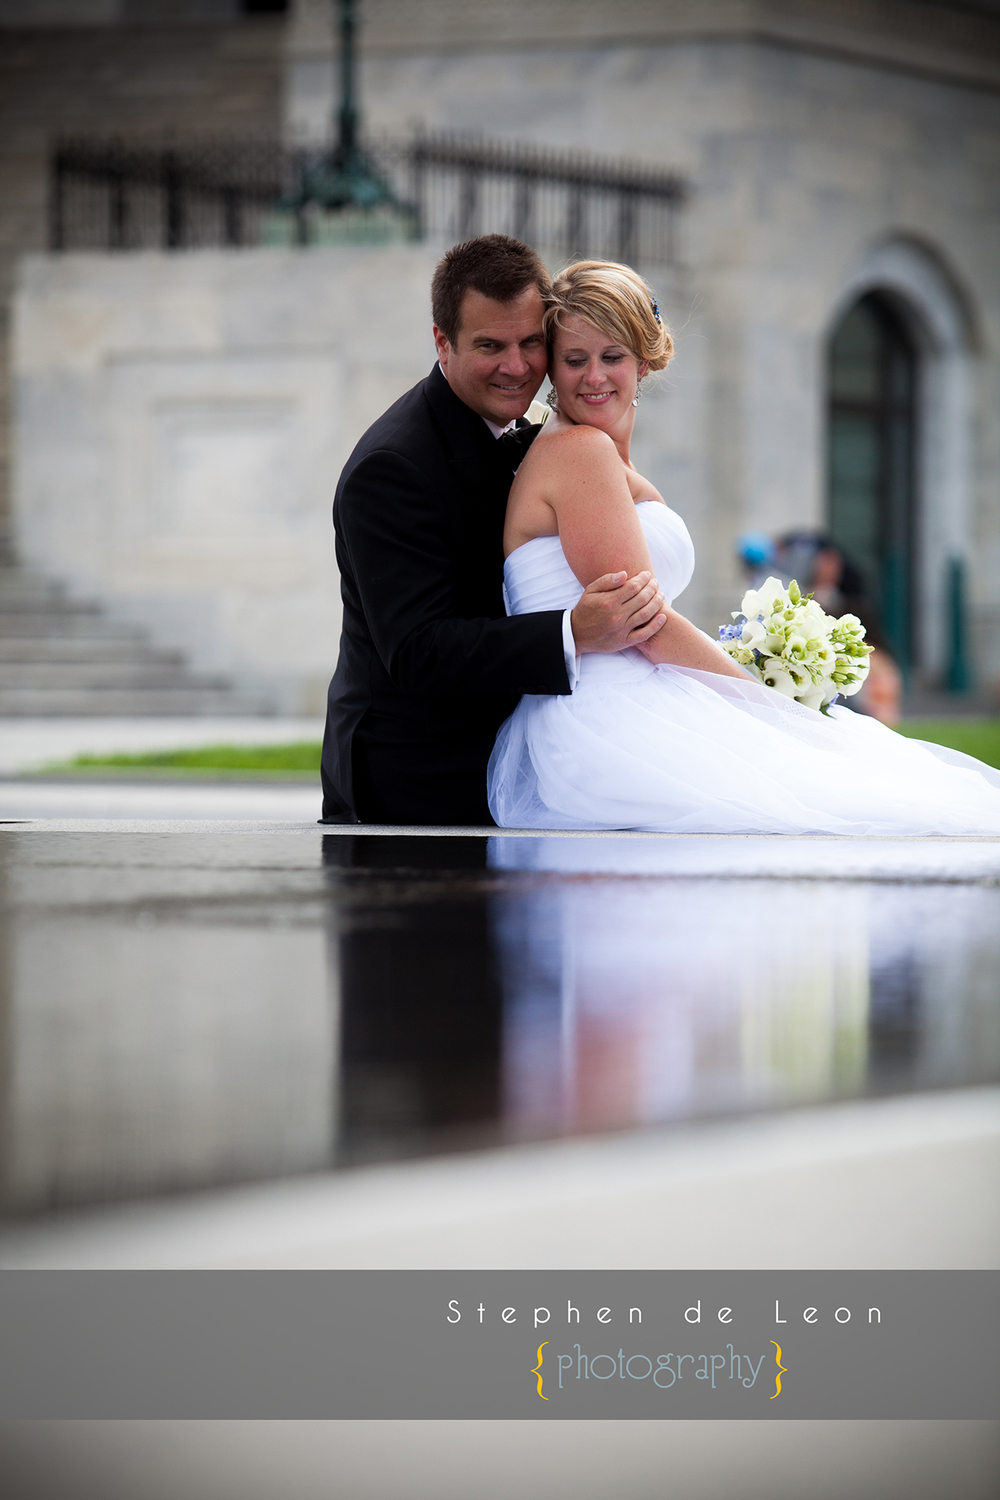 Stephen_de_Leon_Capitol_Wedding_Photography_18.jpg